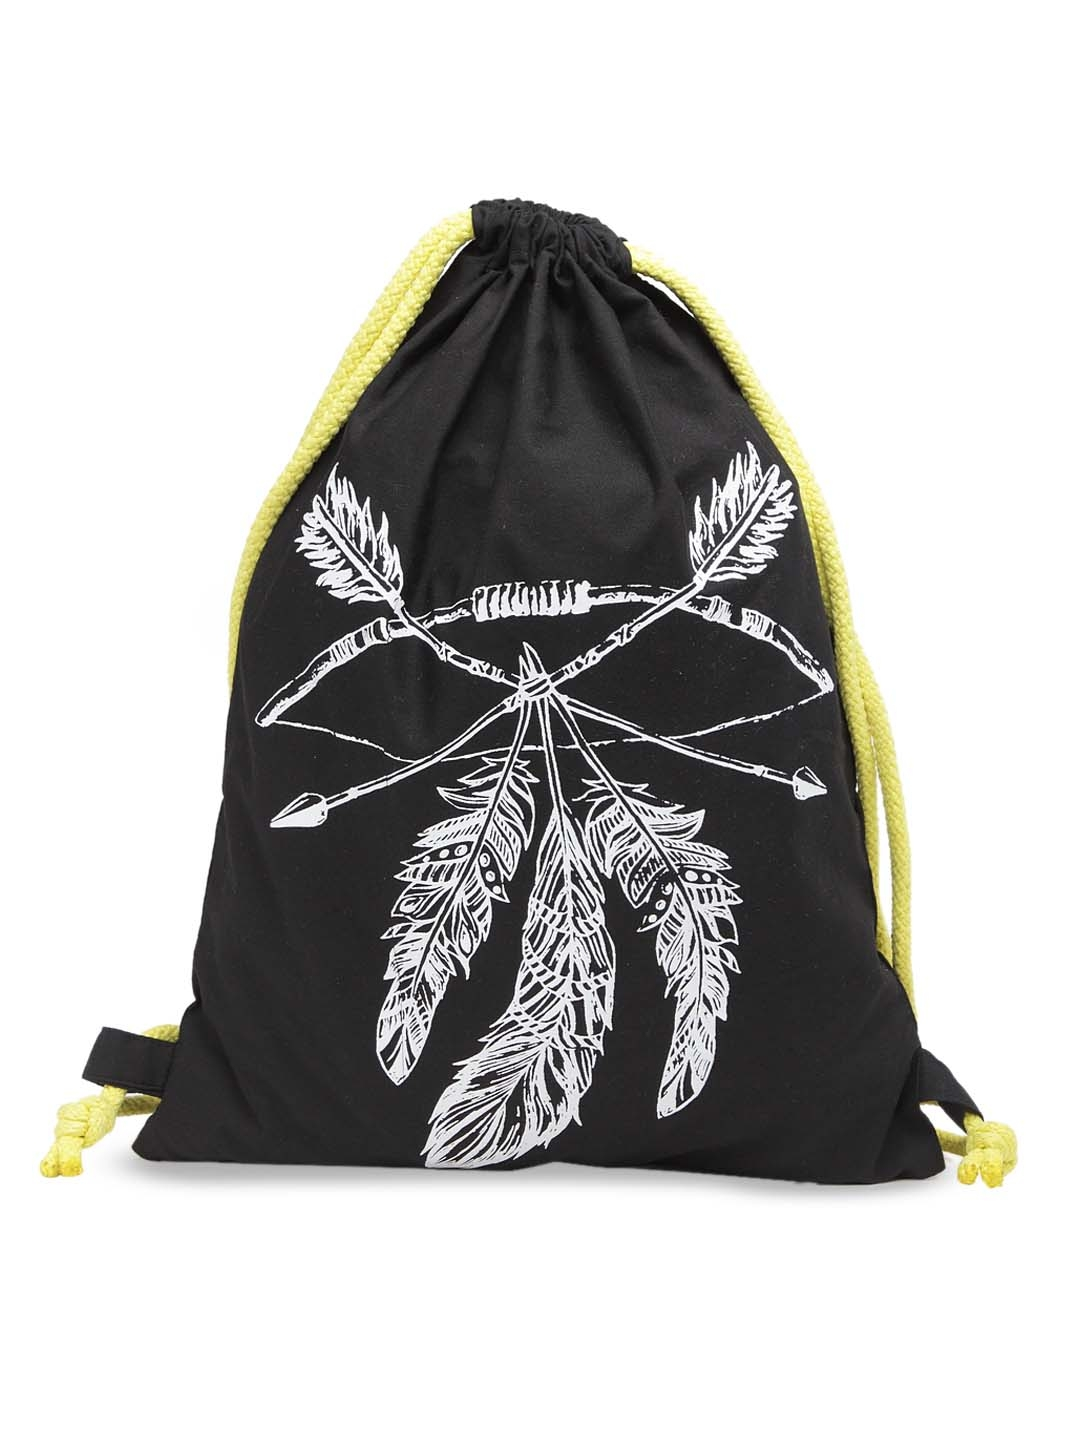 The House of Tara Unisex Black Graphic Backpack